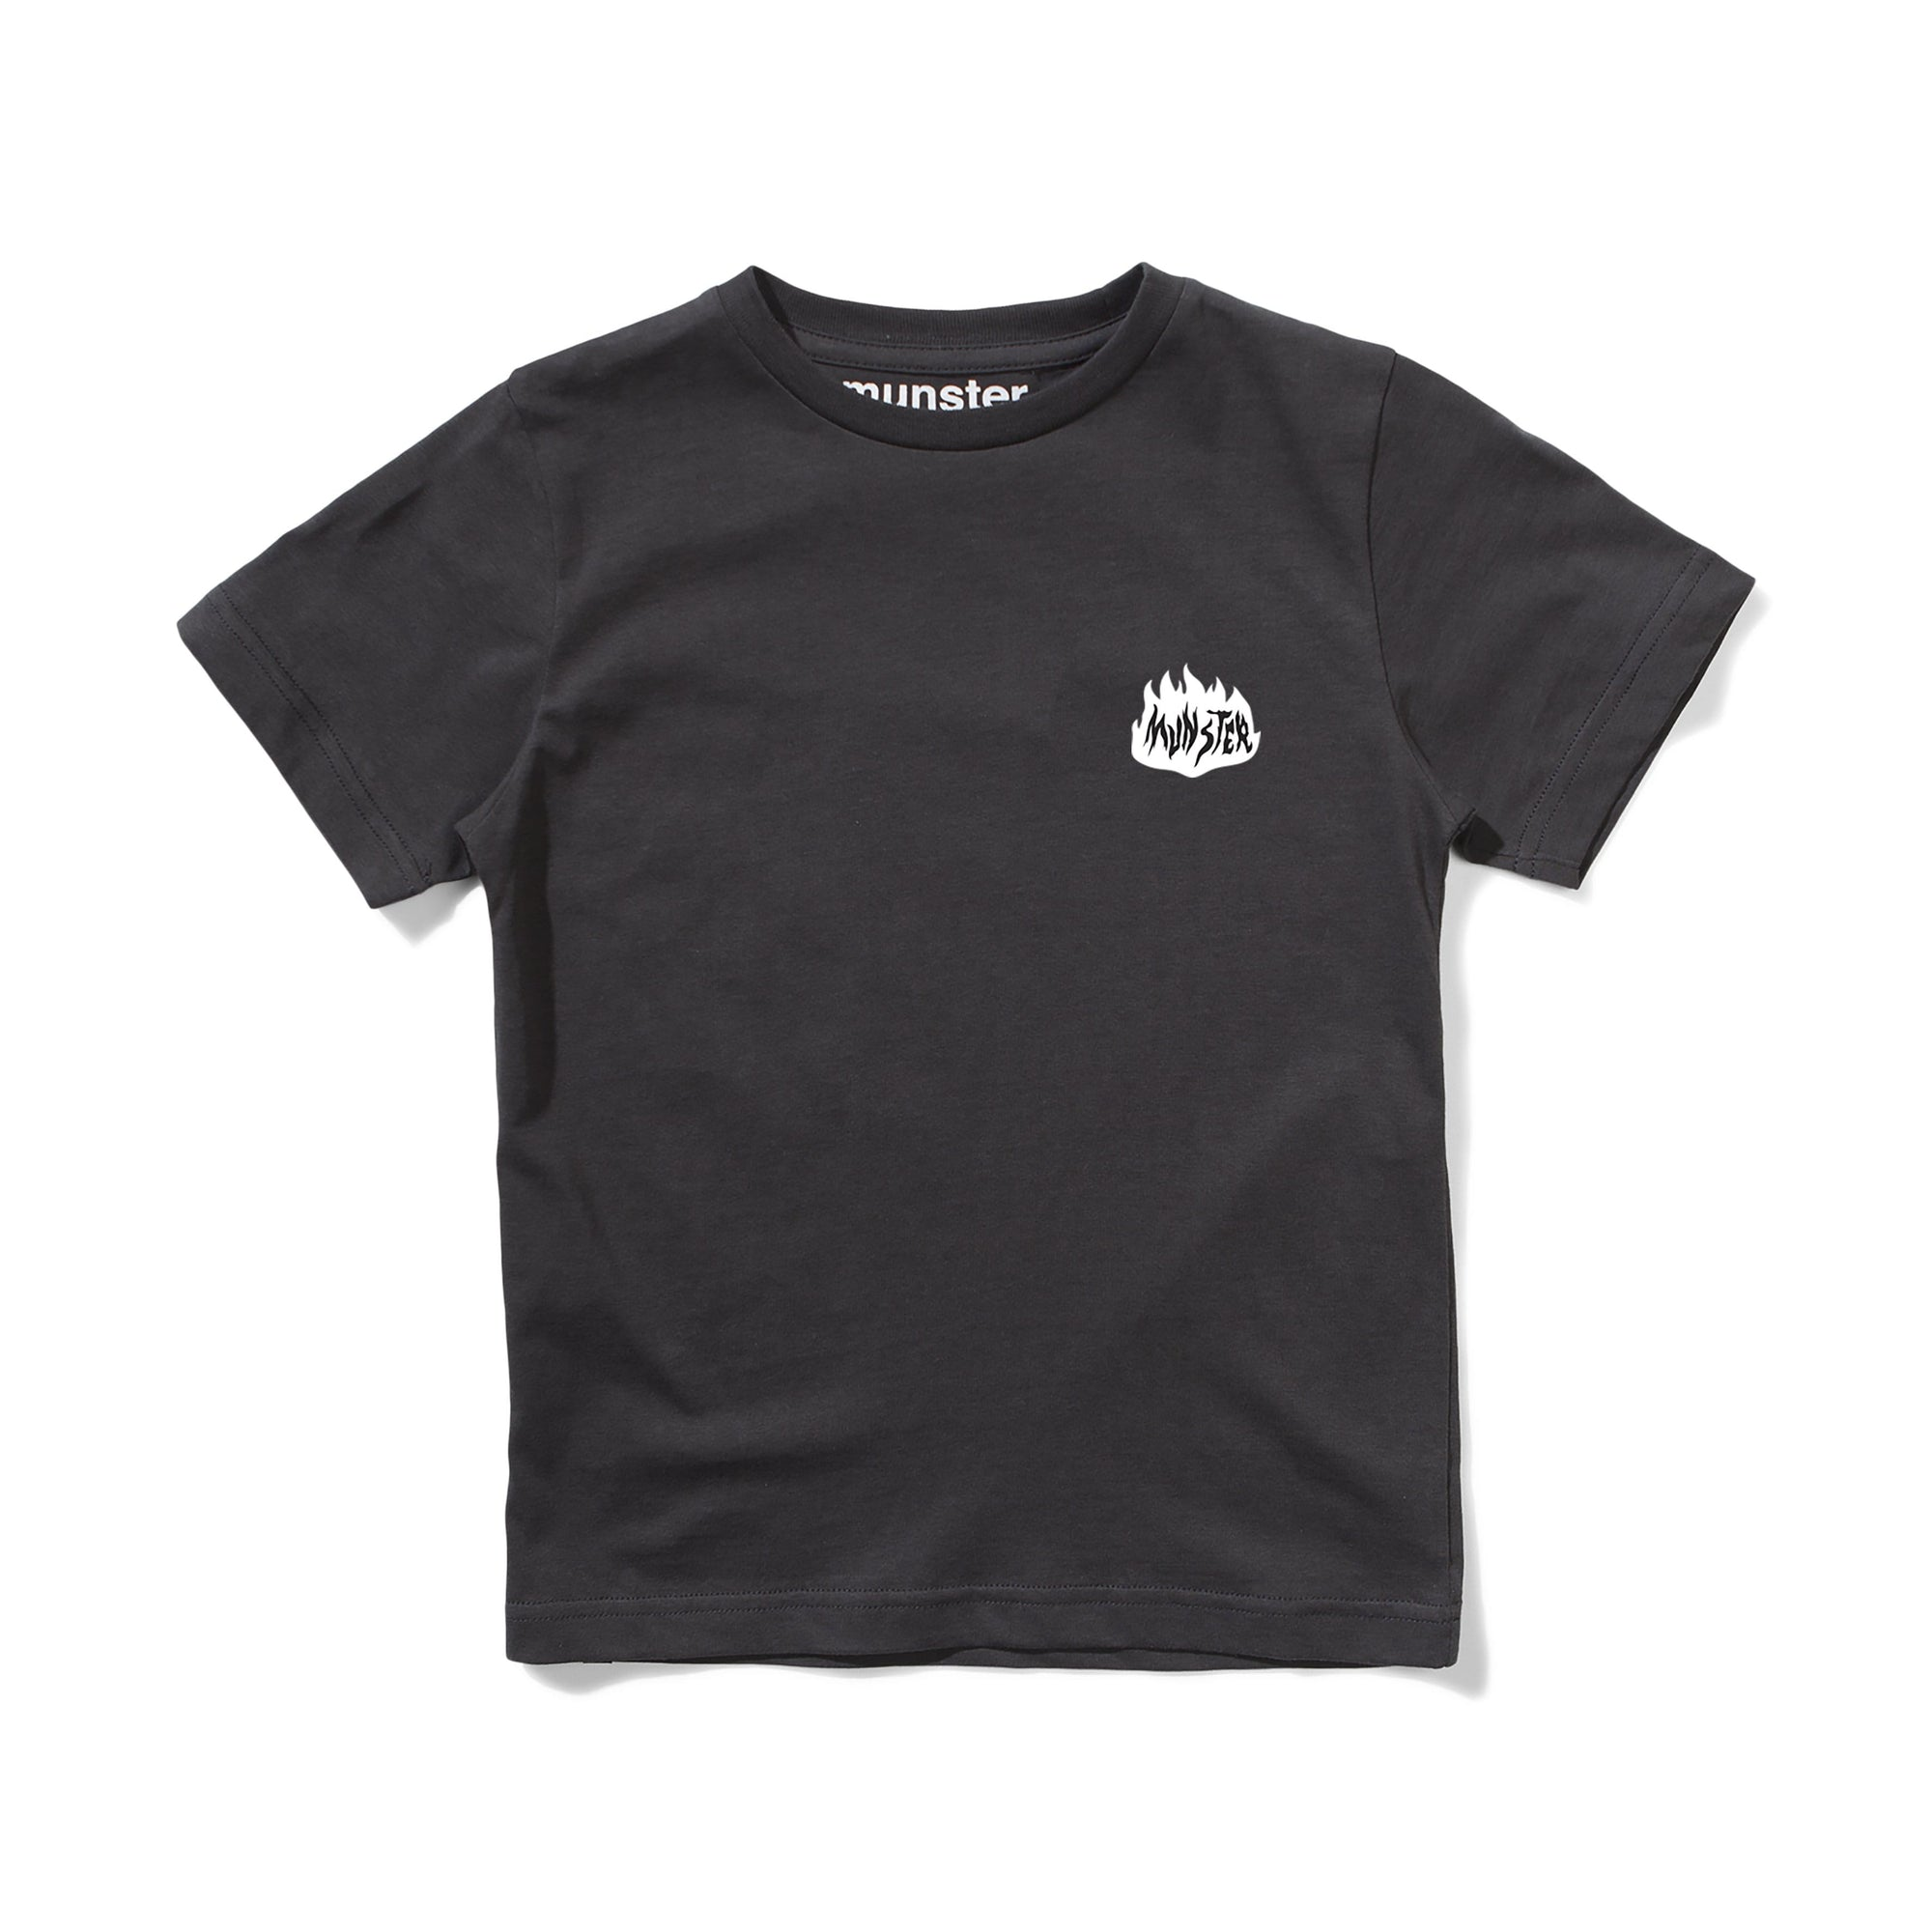 Munster Kids On Fire Tee Soft Black